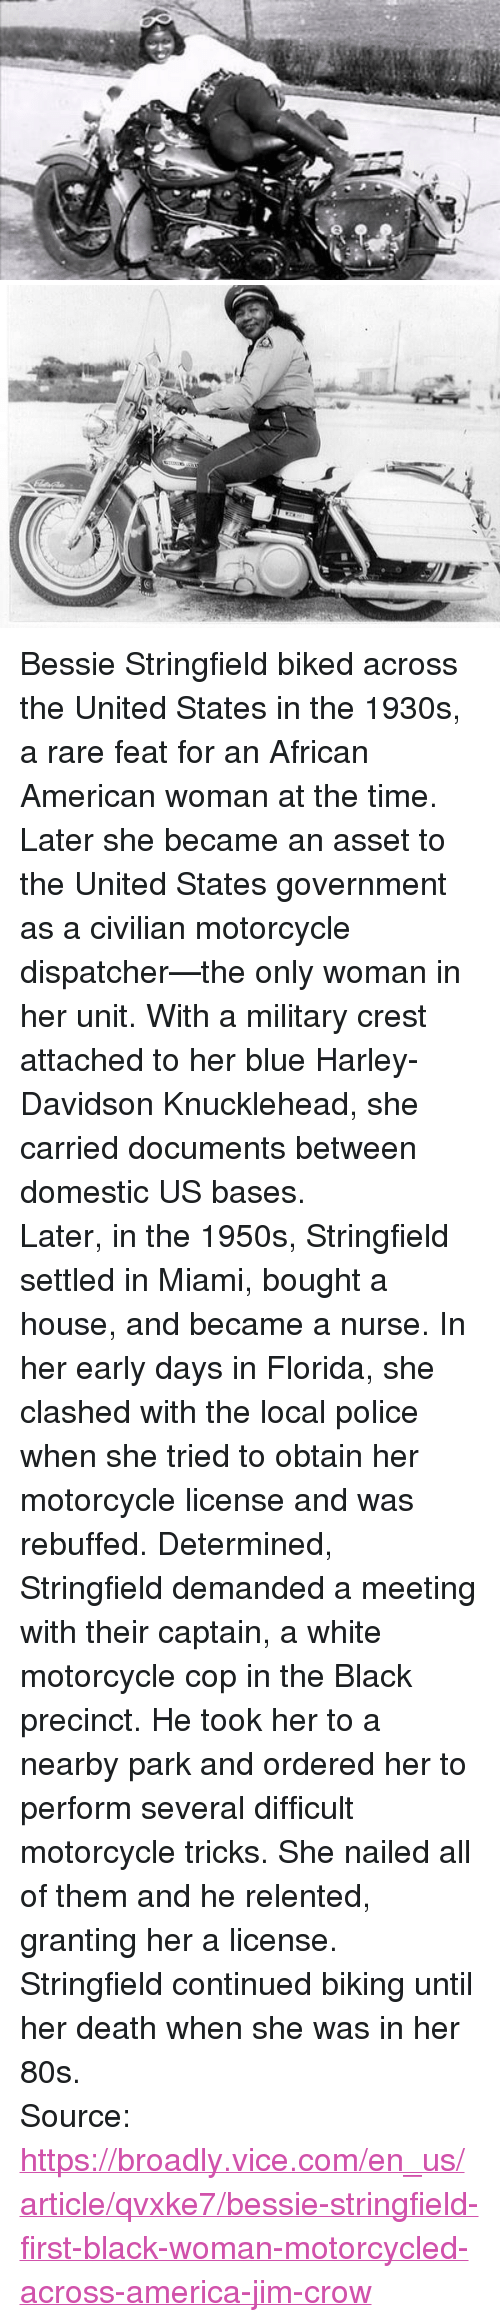 """80s, America, and Police: <p>Bessie Stringfield biked across the United States in the 1930s, a rare feat for an African American woman at the time. Later she became an asset to the United States government as a civilian motorcycle dispatcher—the only woman in her unit. With a military crest attached to her blue Harley-Davidson Knucklehead, she carried documents between domestic US bases.</p>  <p>Later, in the 1950s, Stringfield settled in Miami, bought a house, and became a nurse. In her early days in Florida, she clashed with the local police when she tried to obtain her motorcycle license and was rebuffed. Determined, Stringfield demanded a meeting with their captain, a white motorcycle cop in the Black precinct. He took her to a nearby park and ordered her to perform several difficult motorcycle tricks. She nailed all of them and he relented, granting her a license.</p>  <p>Stringfield continued biking until her death when she was in her 80s.</p>  Source: <a href=""""https://broadly.vice.com/en_us/article/qvxke7/bessie-stringfield-first-black-woman-motorcycled-across-america-jim-crow"""">https://broadly.vice.com/en_us/article/qvxke7/bessie-stringfield-first-black-woman-motorcycled-across-america-jim-crow</a>"""